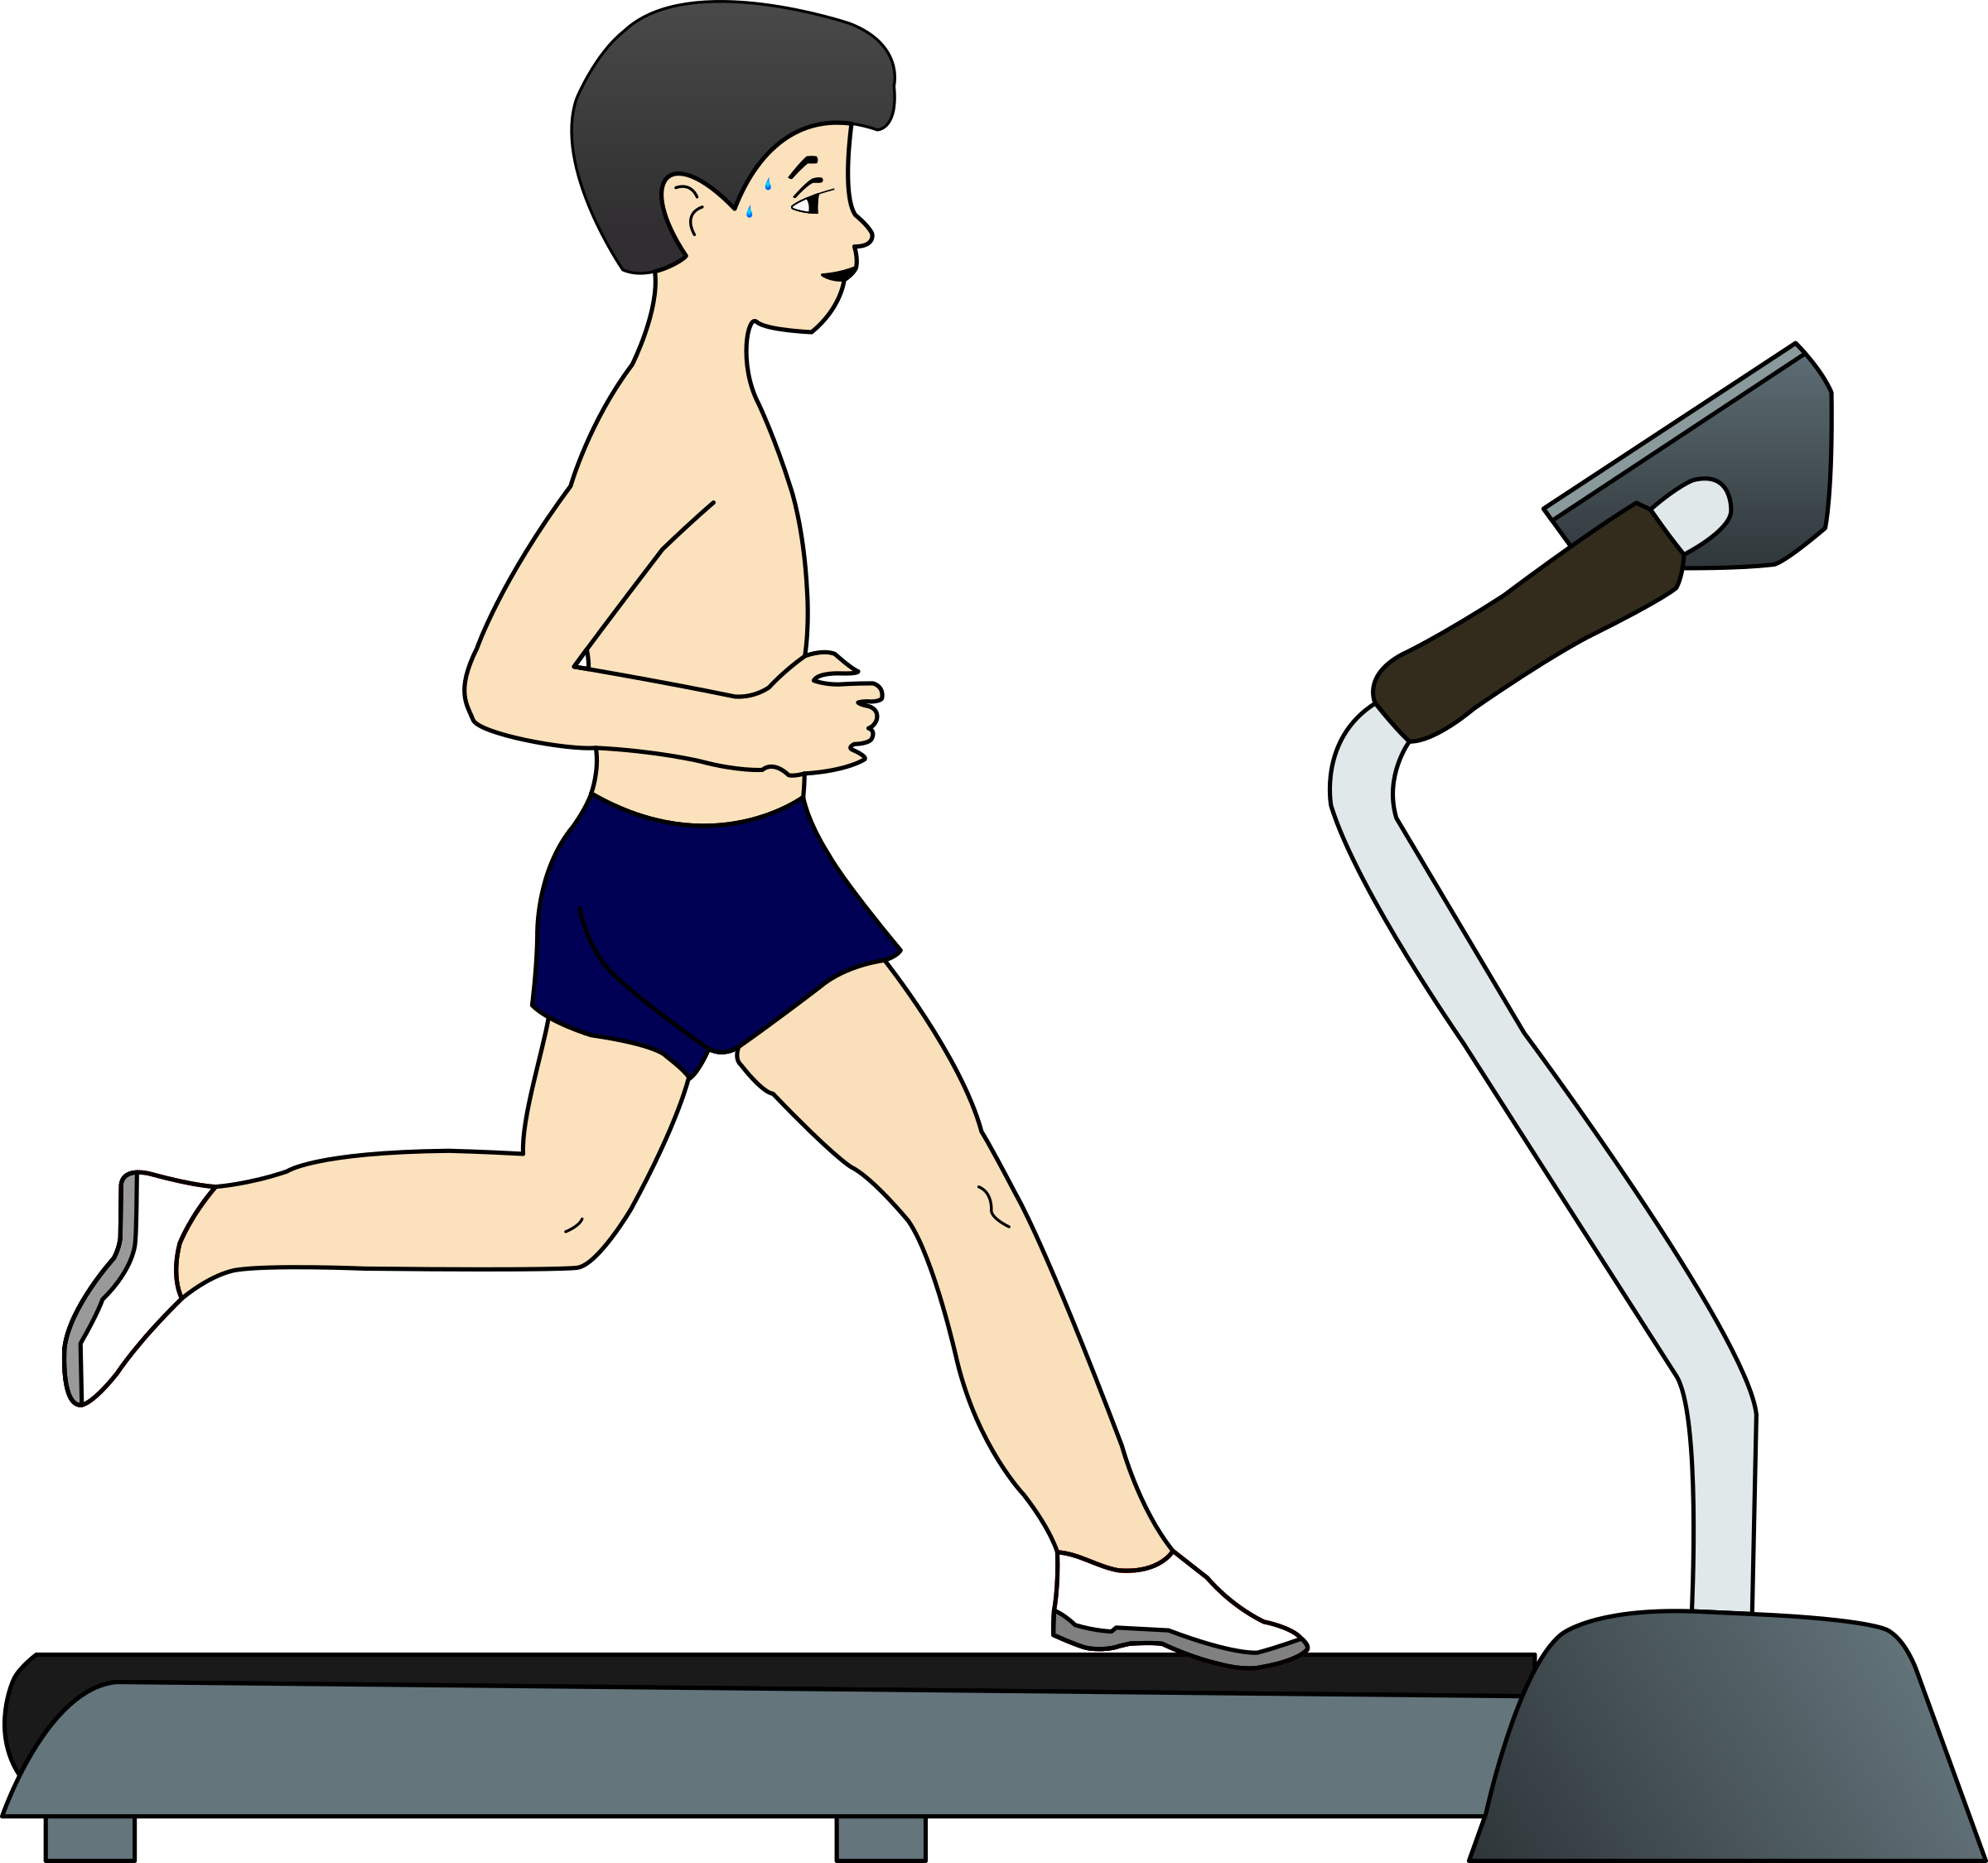 Running on treadmill big. Clipart boy exercise